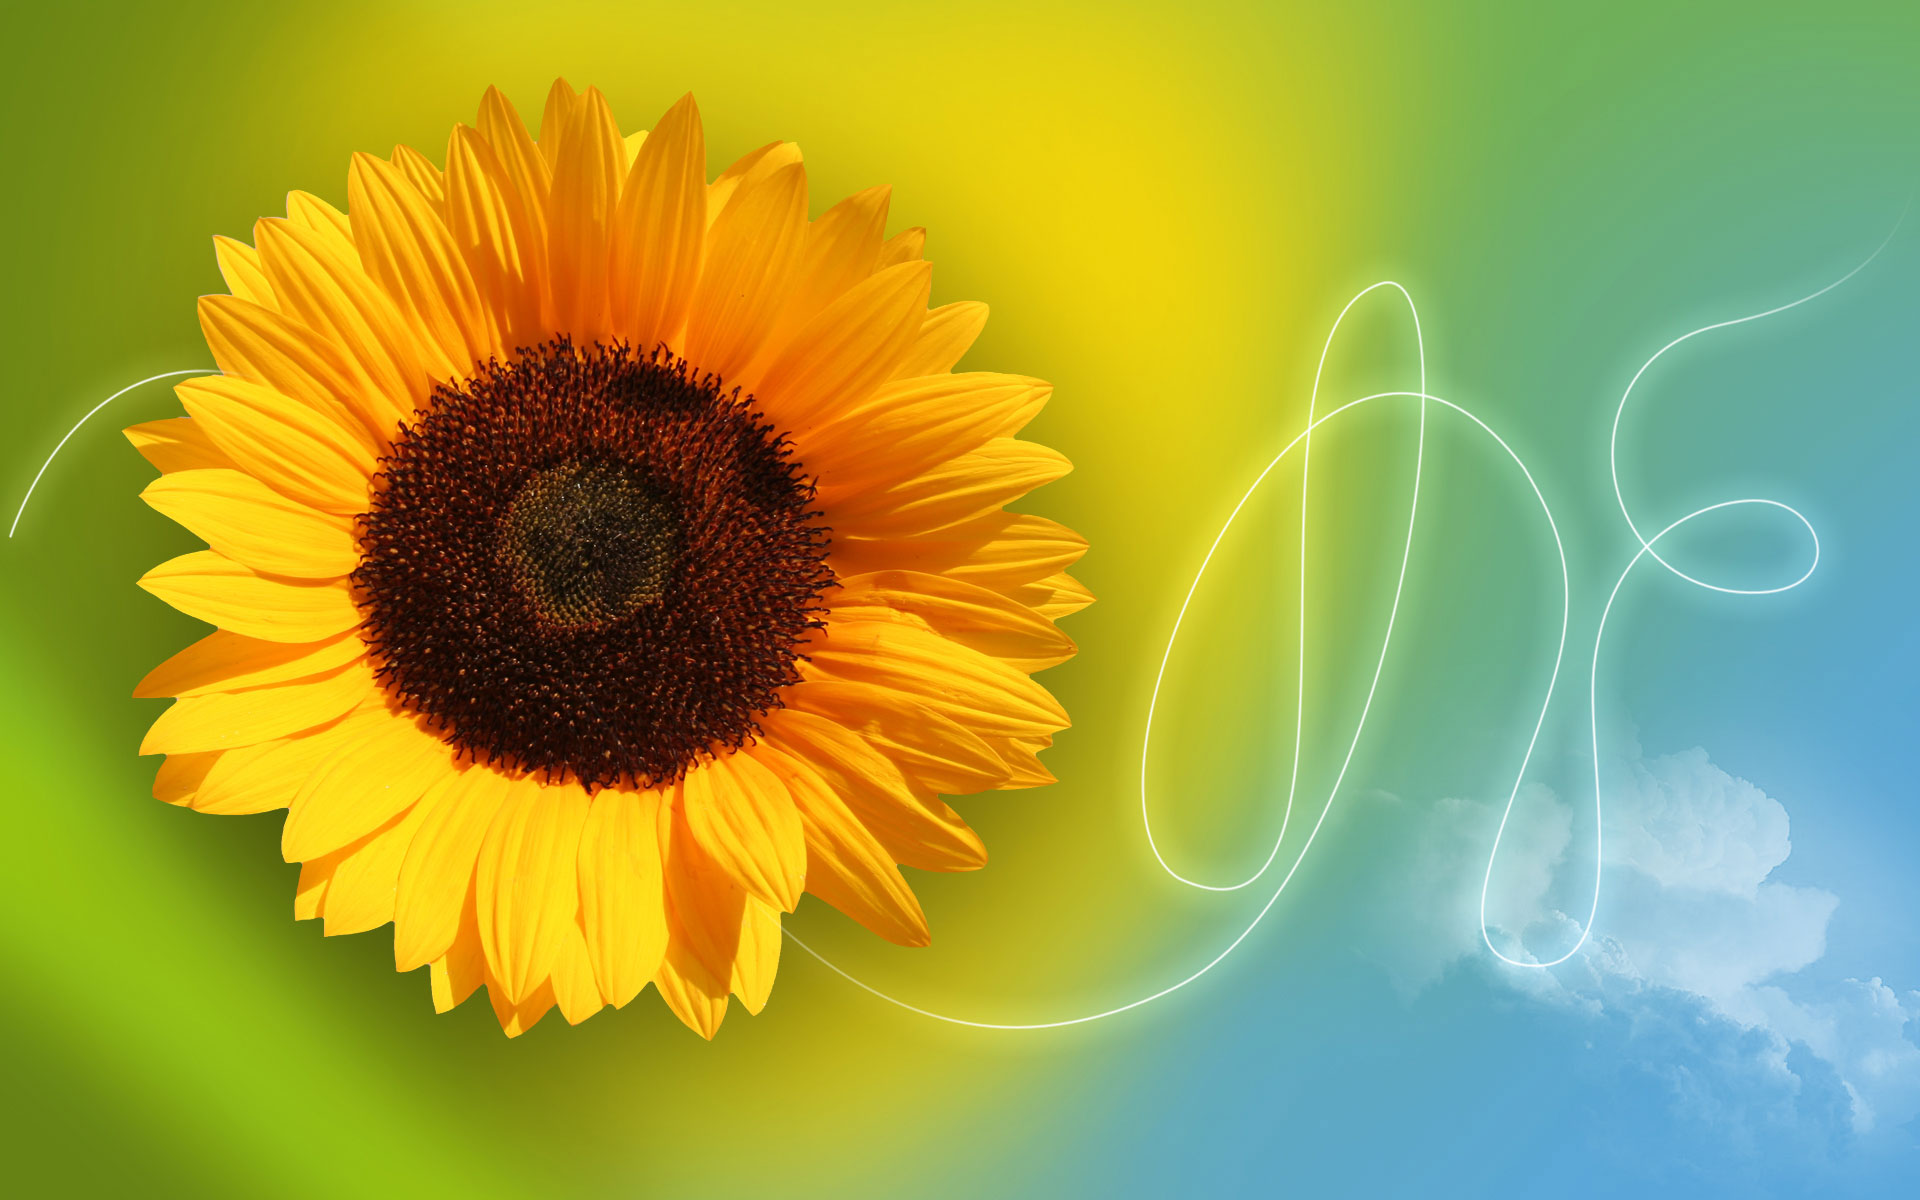 sunflower wallpaper images